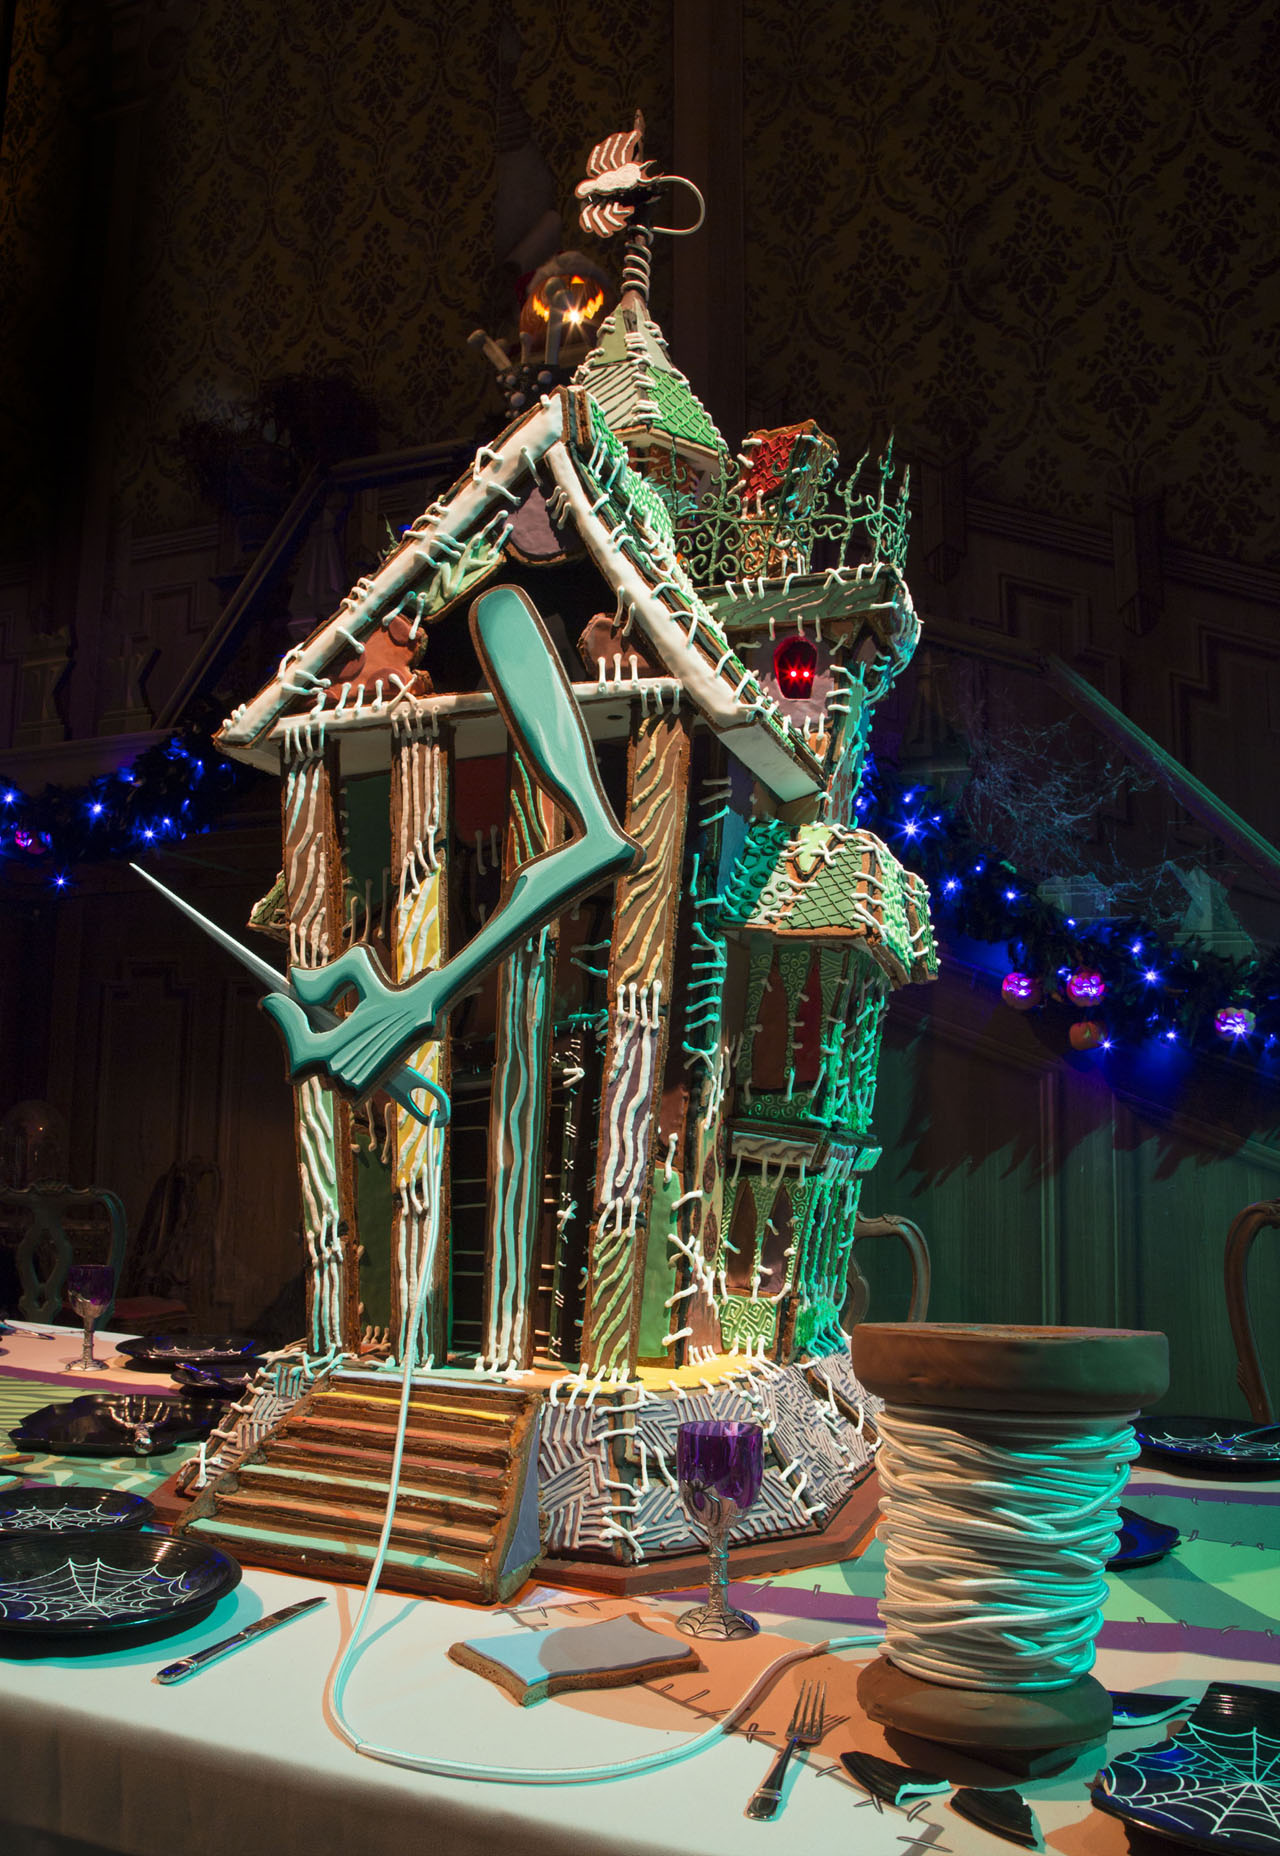 "HAUNTED MANSION HOLIDAY GINGERBREAD HOUSE Ð Now through Jan. 8, 2017, Haunted Mansion Holiday brings the frightfully fun cheer of ÒTim BurtonÕs Nightmare Before Christmas"" to the Disneyland Resort. This yearÕs gingerbread house marks the 15th season of this festive tradition in the mansionÕs ballroom. (Scott Brinegar/Disneyland)"